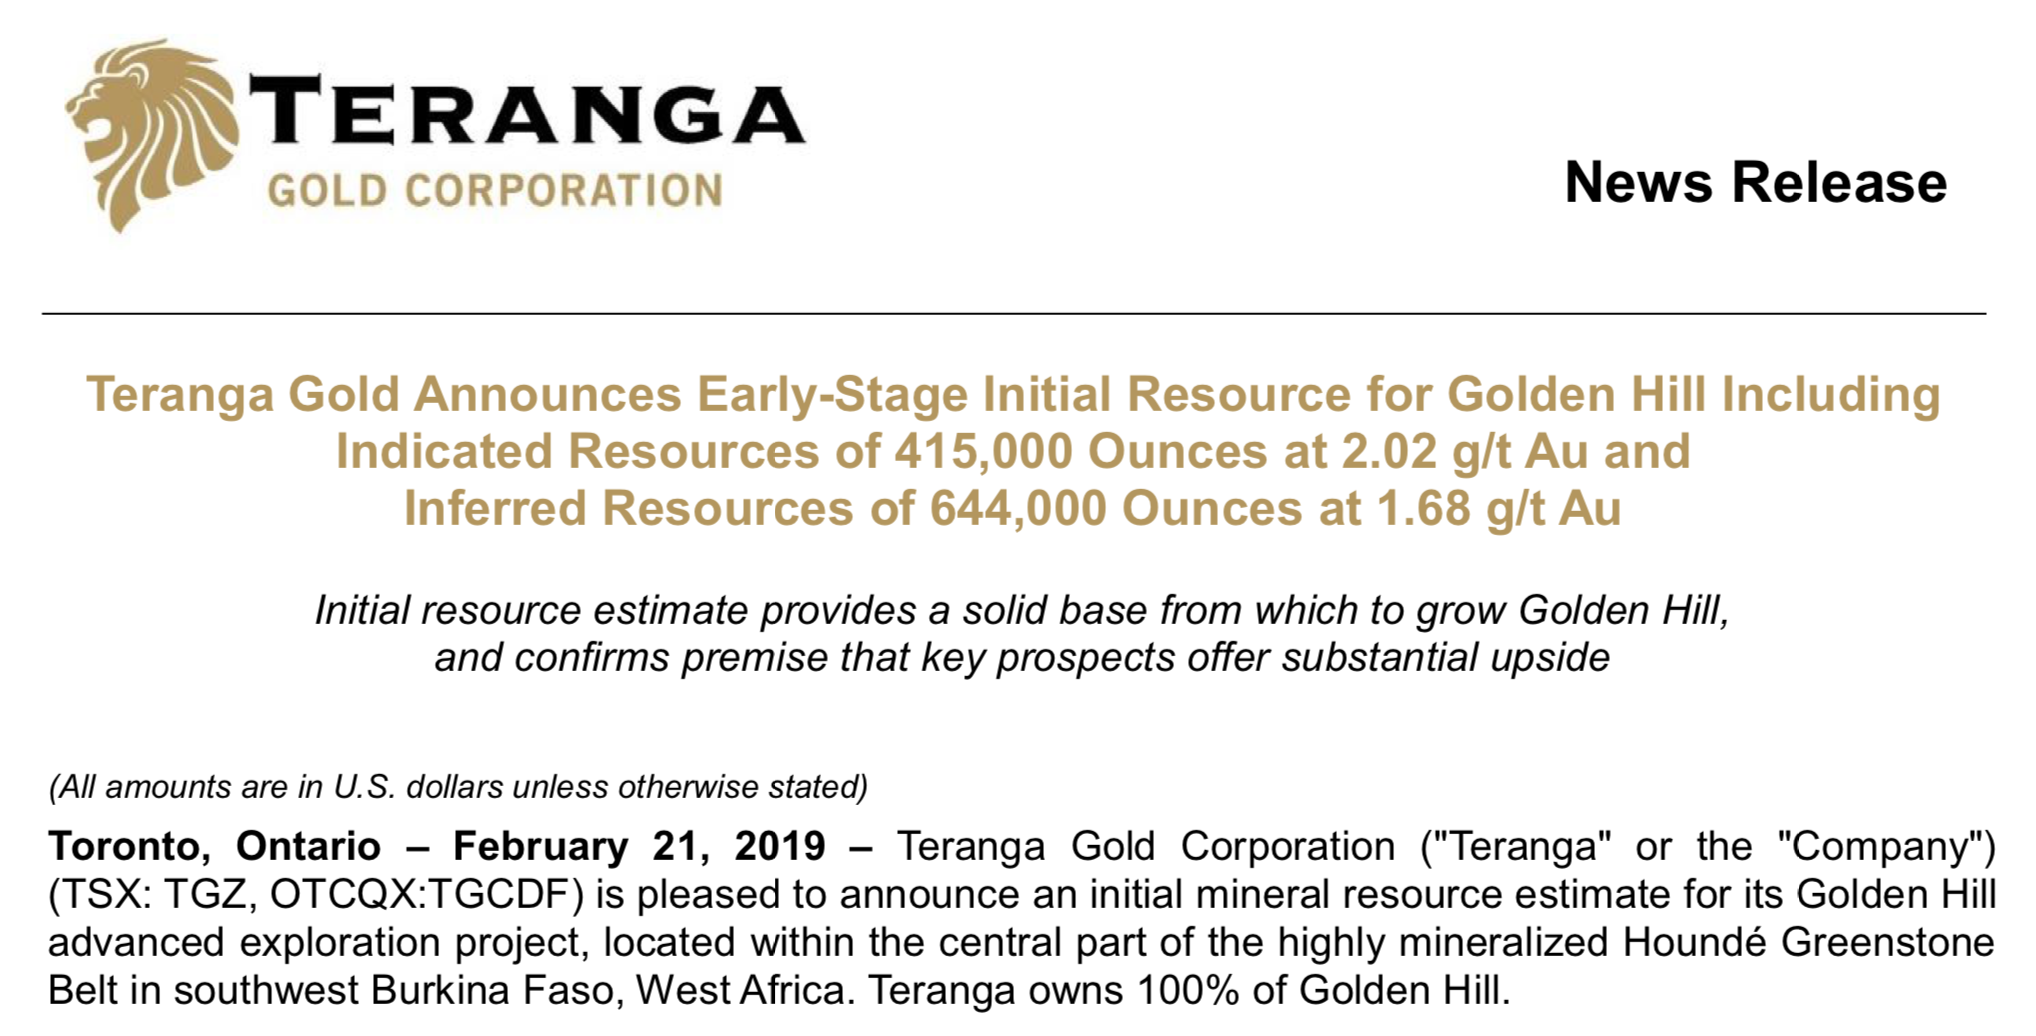 Sarama Resources  Are The Big Fish In The Sea Ready To Make An Offer ... 2013c4fcc5